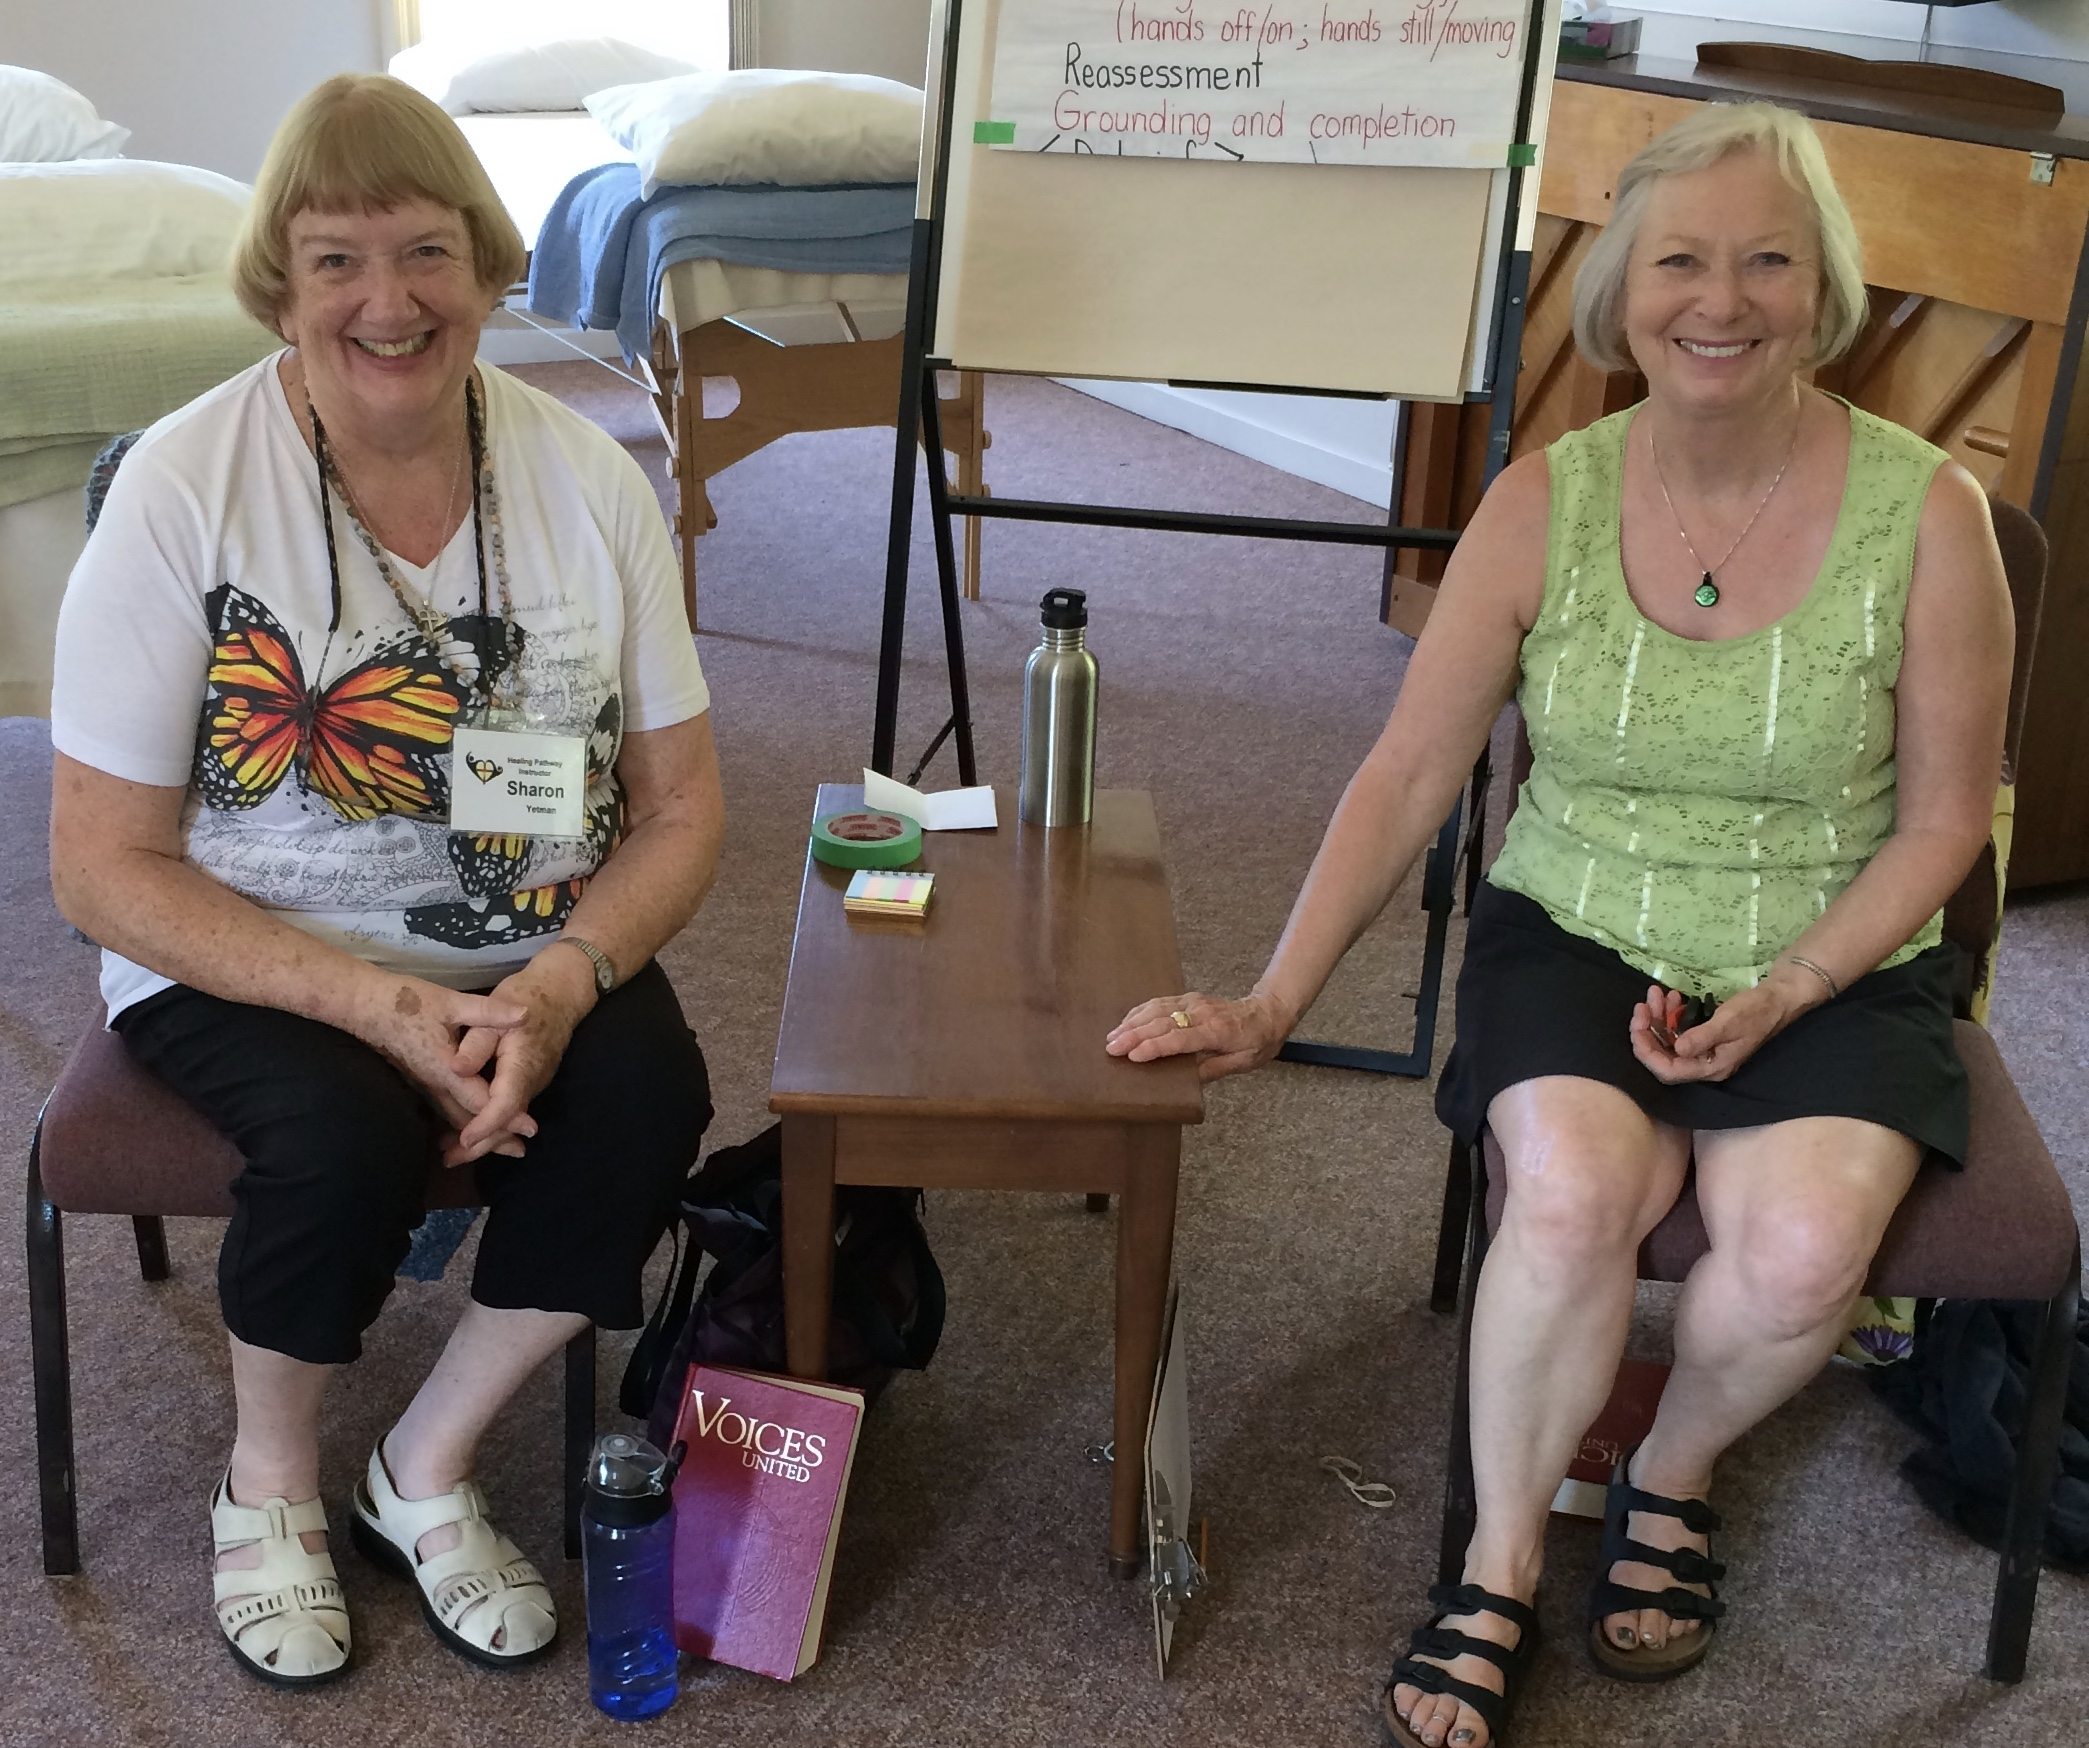 healing Pathway Practitioners sharon Yetman and deb firus offered sessions this week